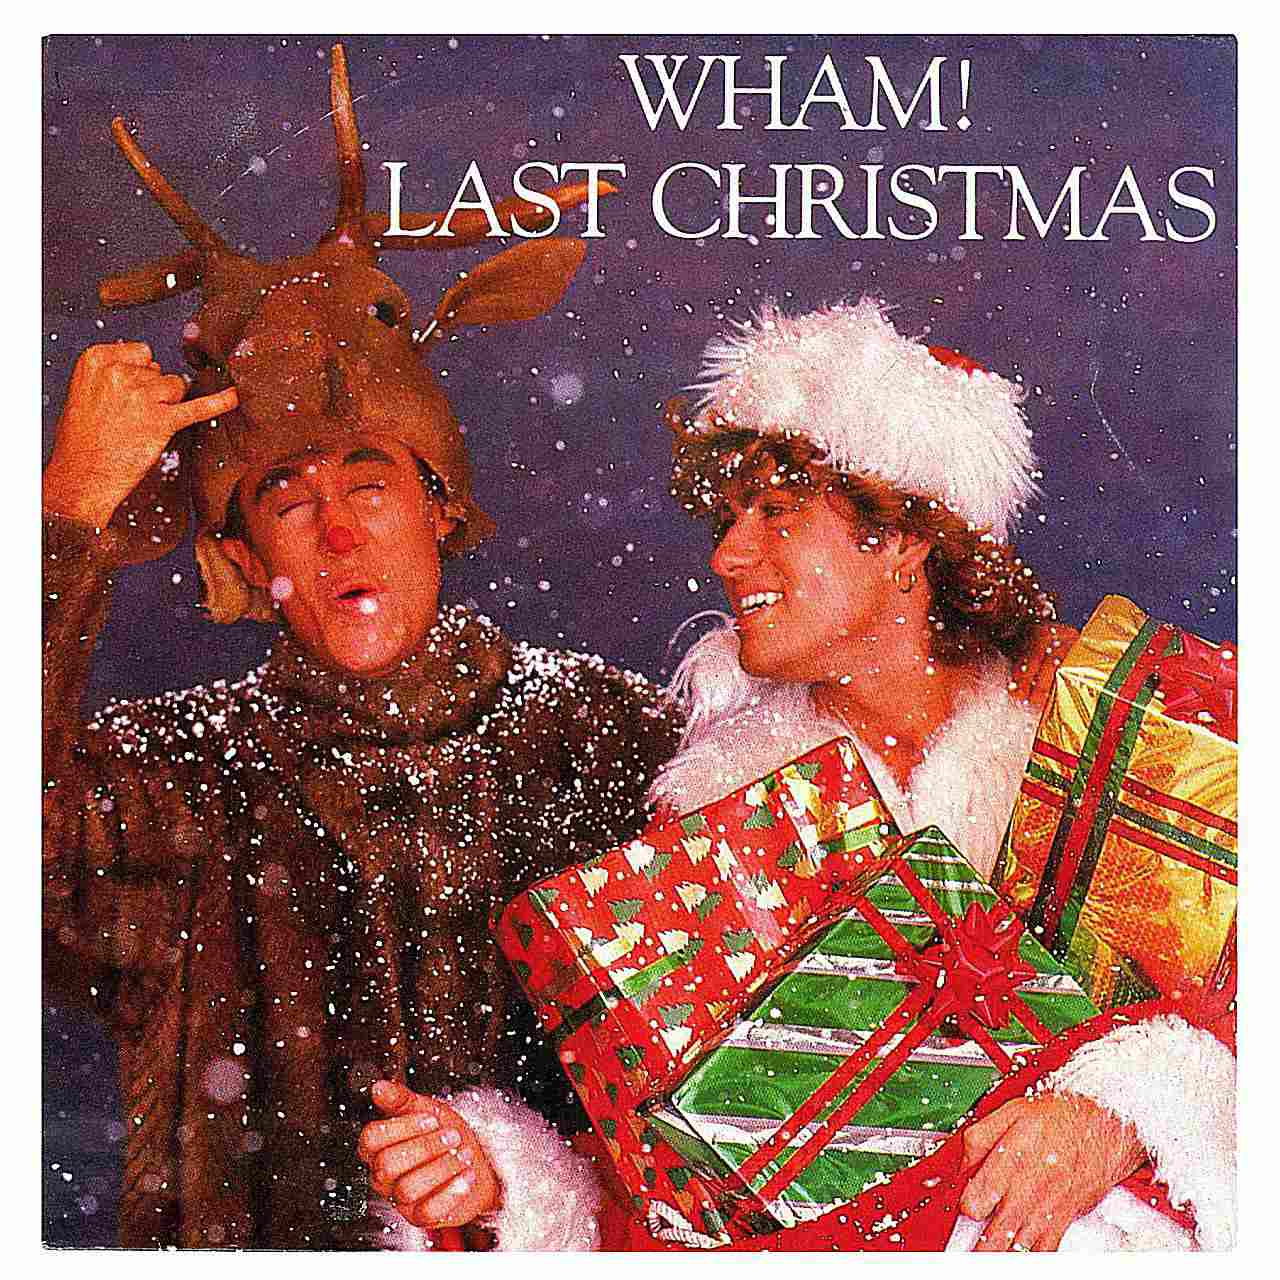 Despite the limiting nature of a Christmas song, Wham! was able to give this single a permanent place in the American holiday tradition. Single cover